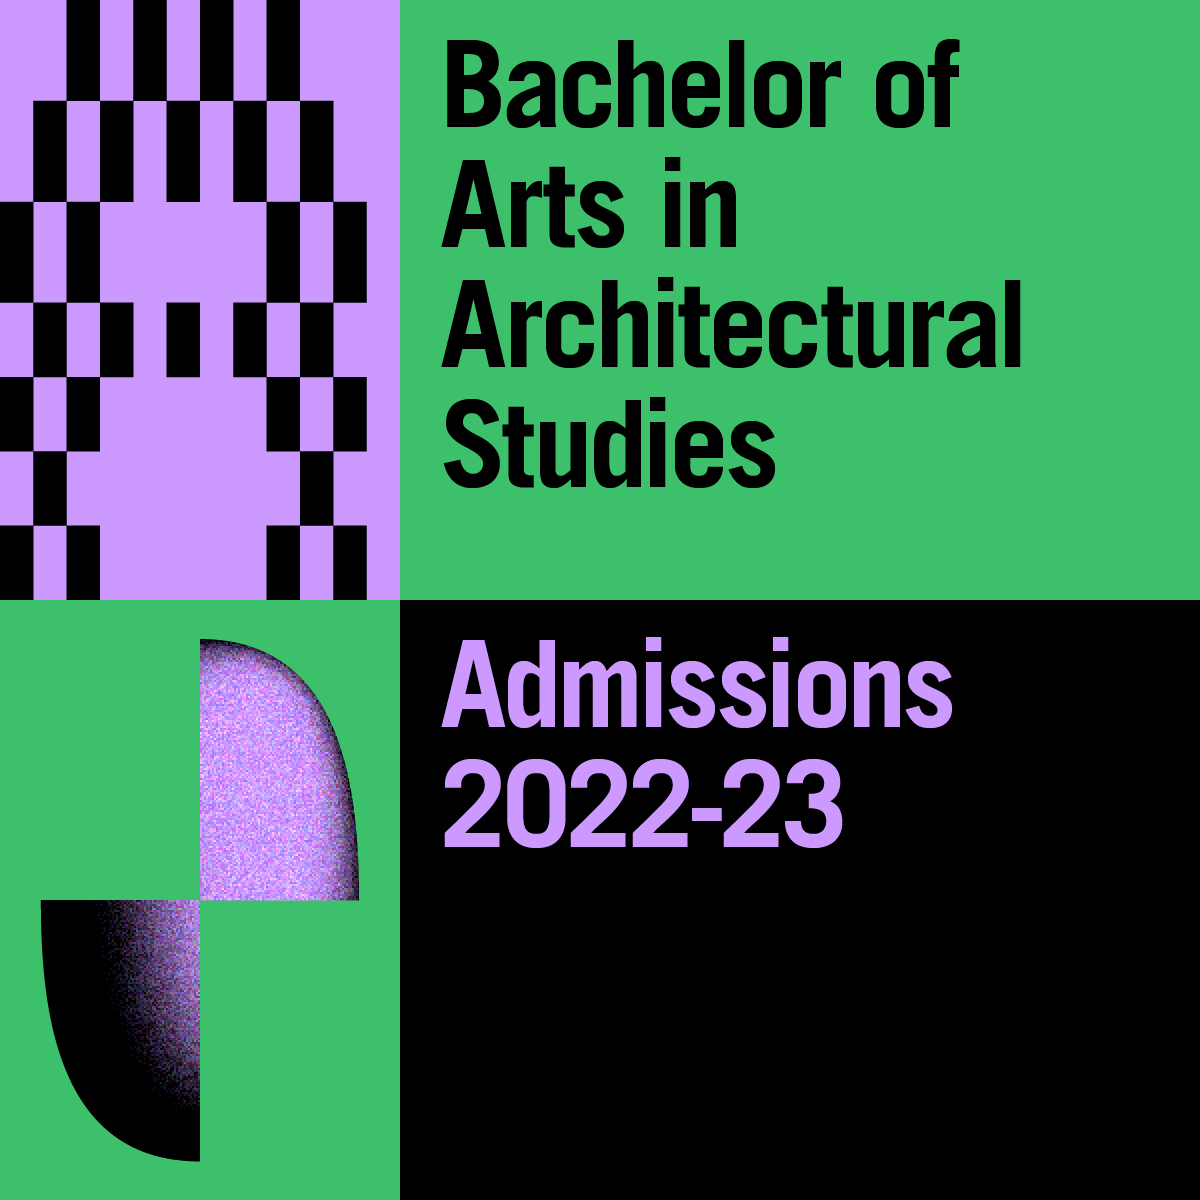 Bachelor of Arts in Architectural Studies Admissions 2022-23